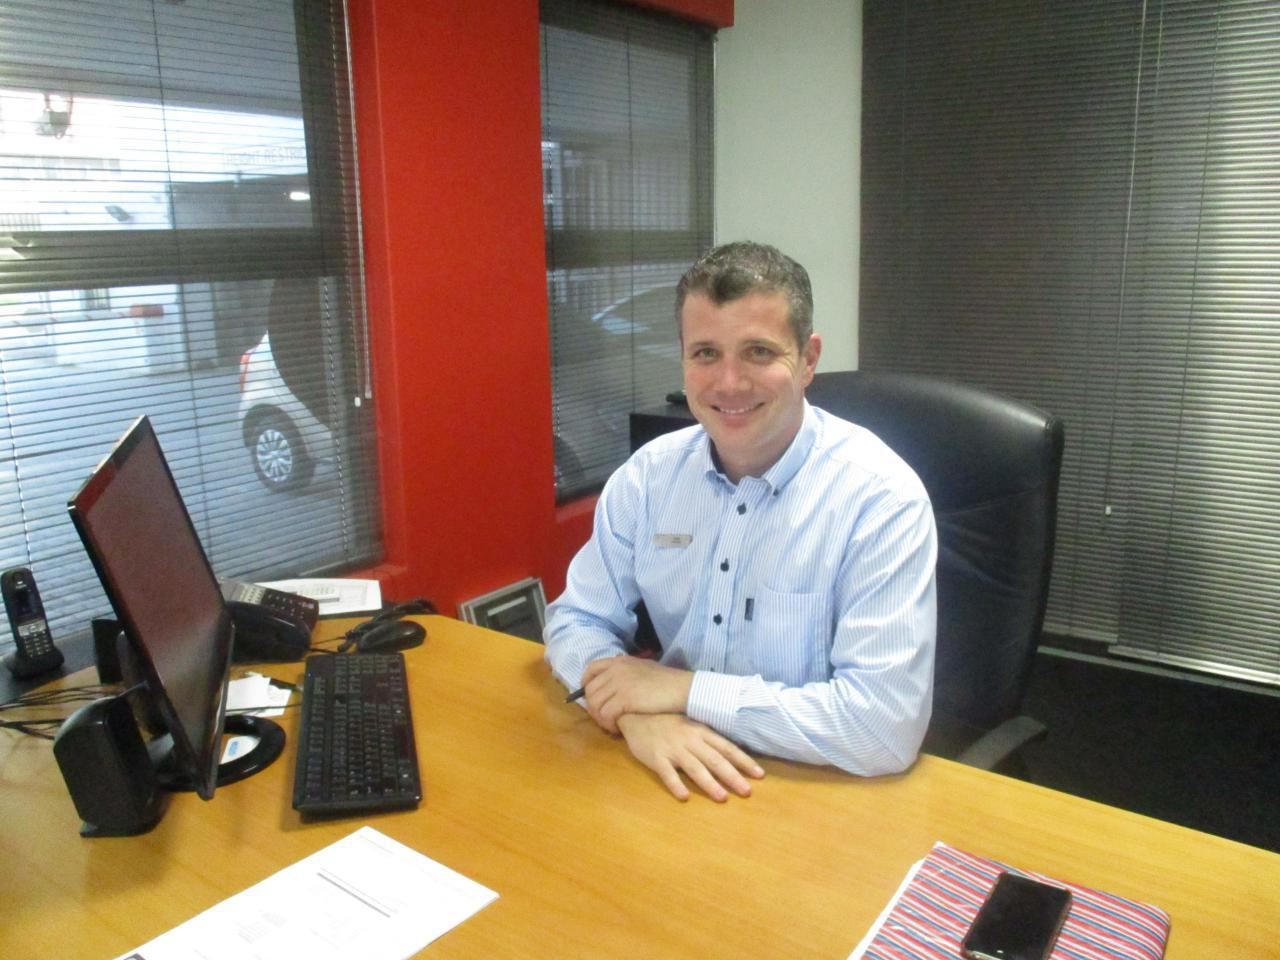 The The New Cmh Toyota Melrose Dealer Principal Dean Chater